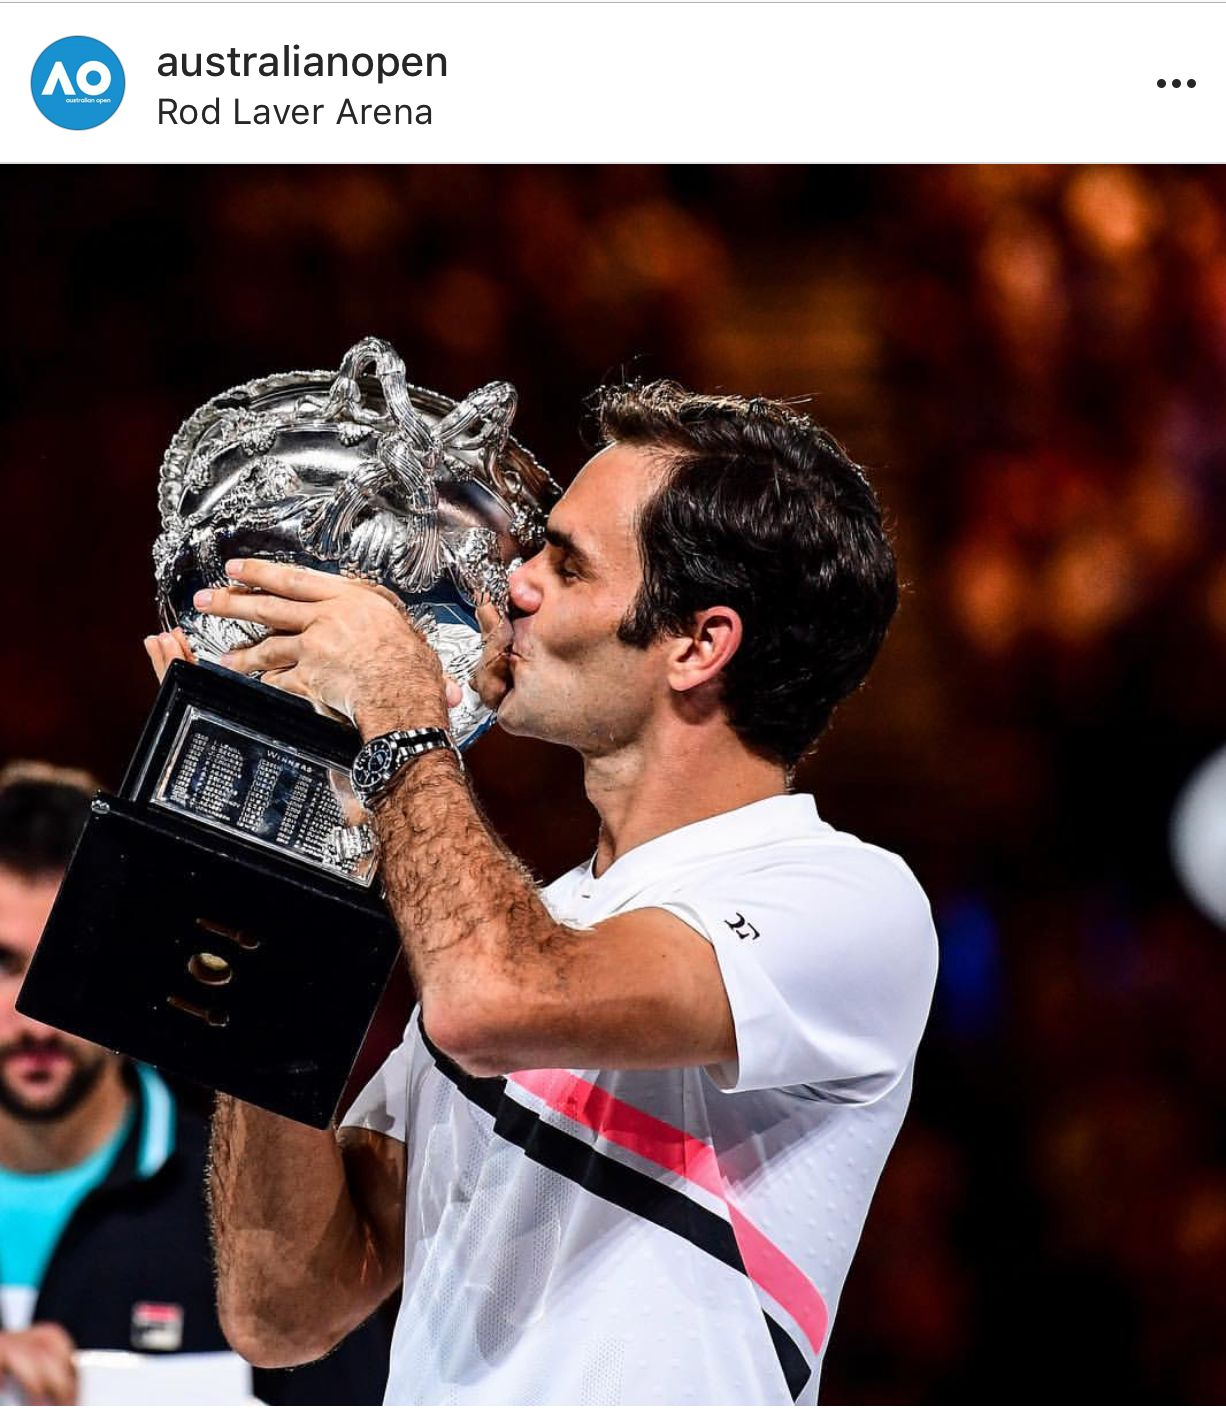 572e59fc8682 Congratulations to the 20th Grand Slam title!!! Amazing!  RogerFederer   rogerfederer